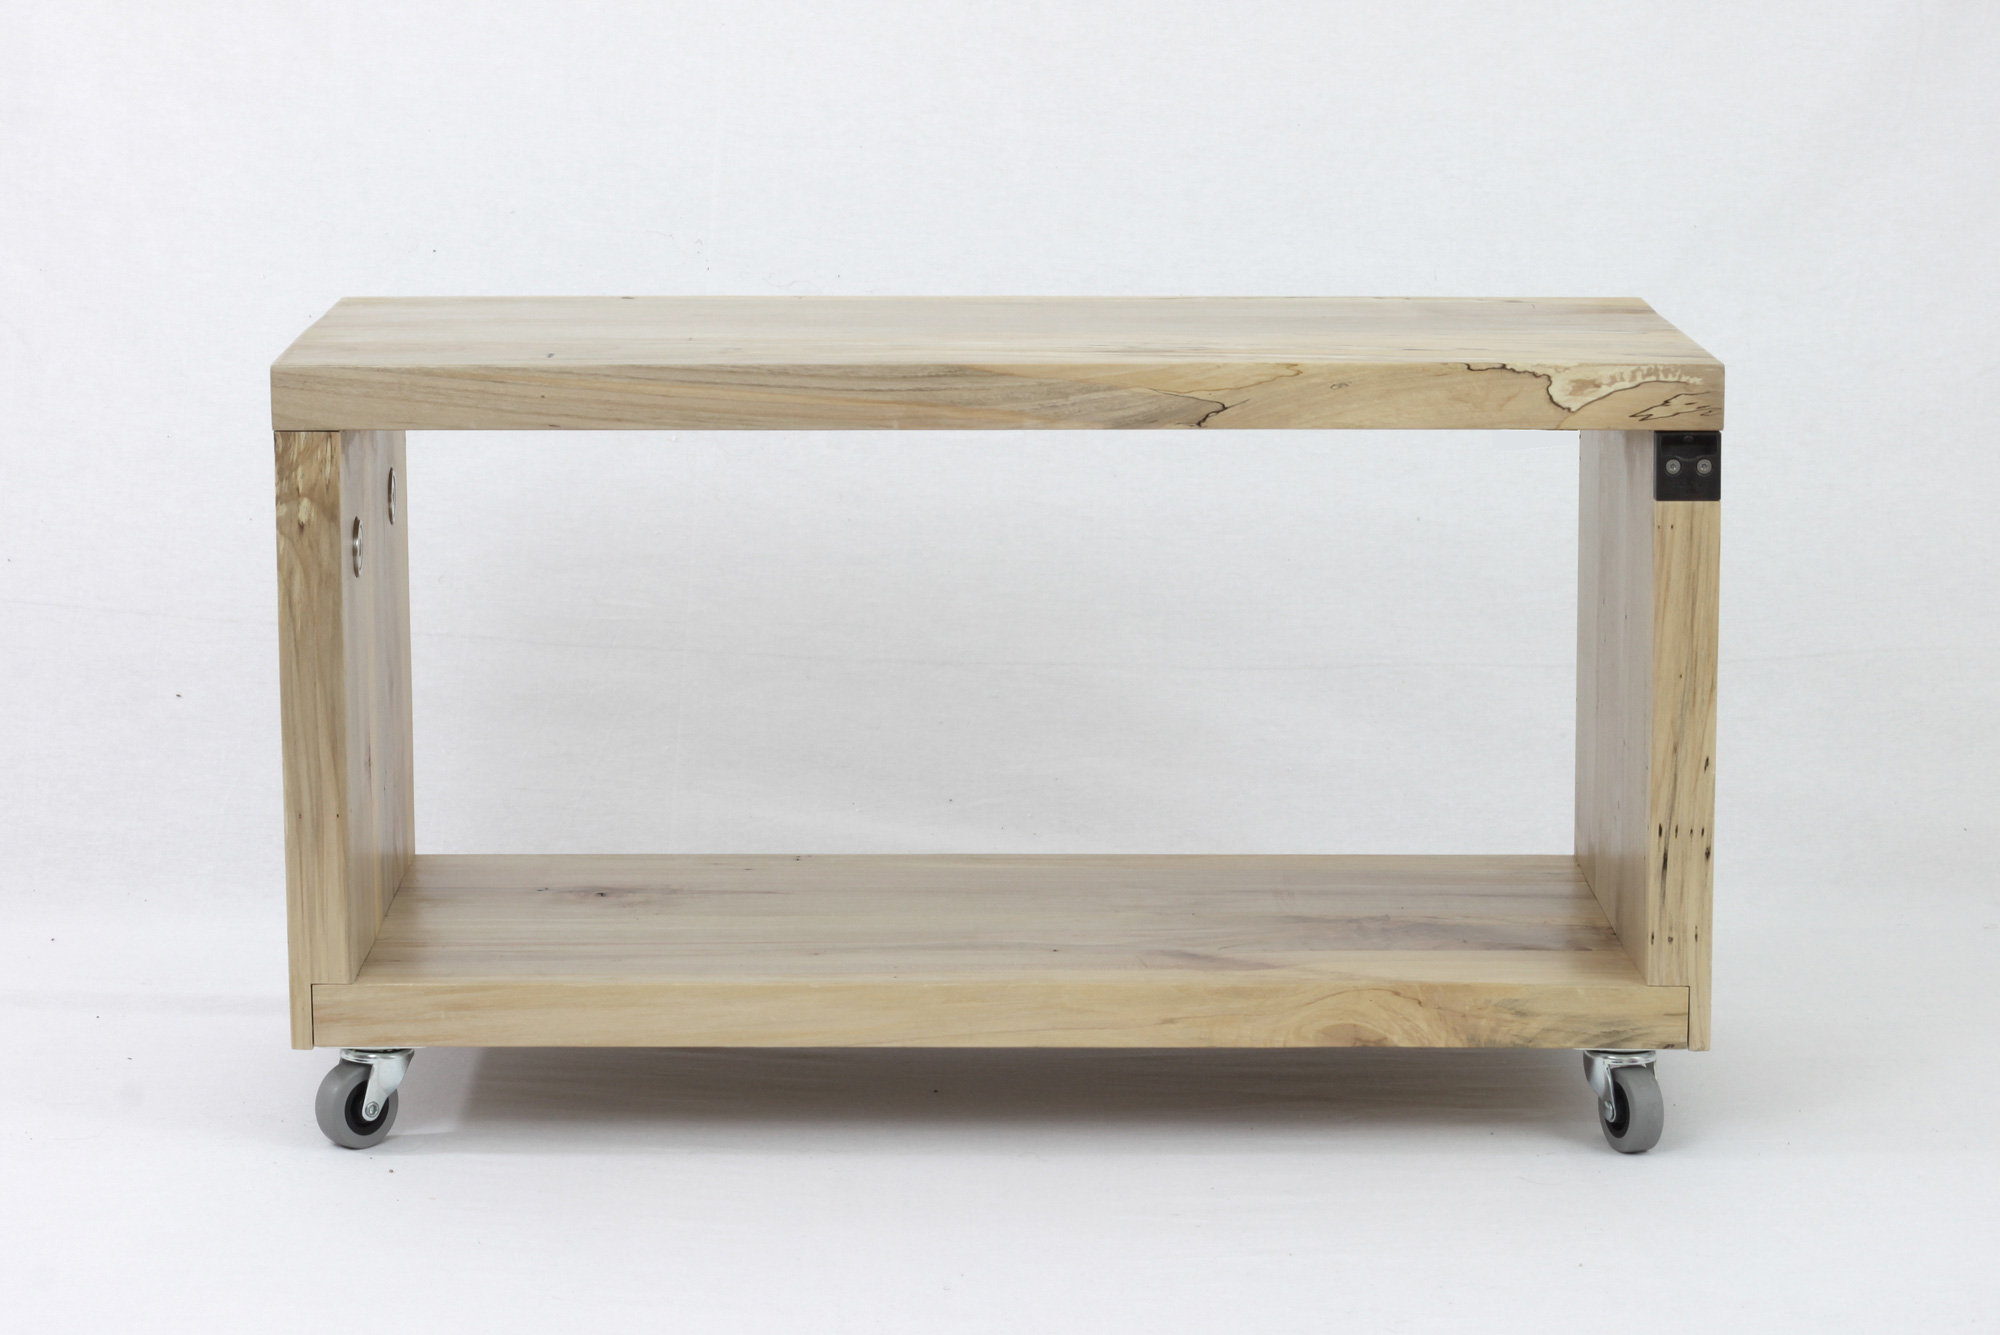 ambrosia-maple-coffee-table-furniture-industrial-design-woodworking-table-3d-printed-beer-bottle-opener-storage-configurations-modular-front-open